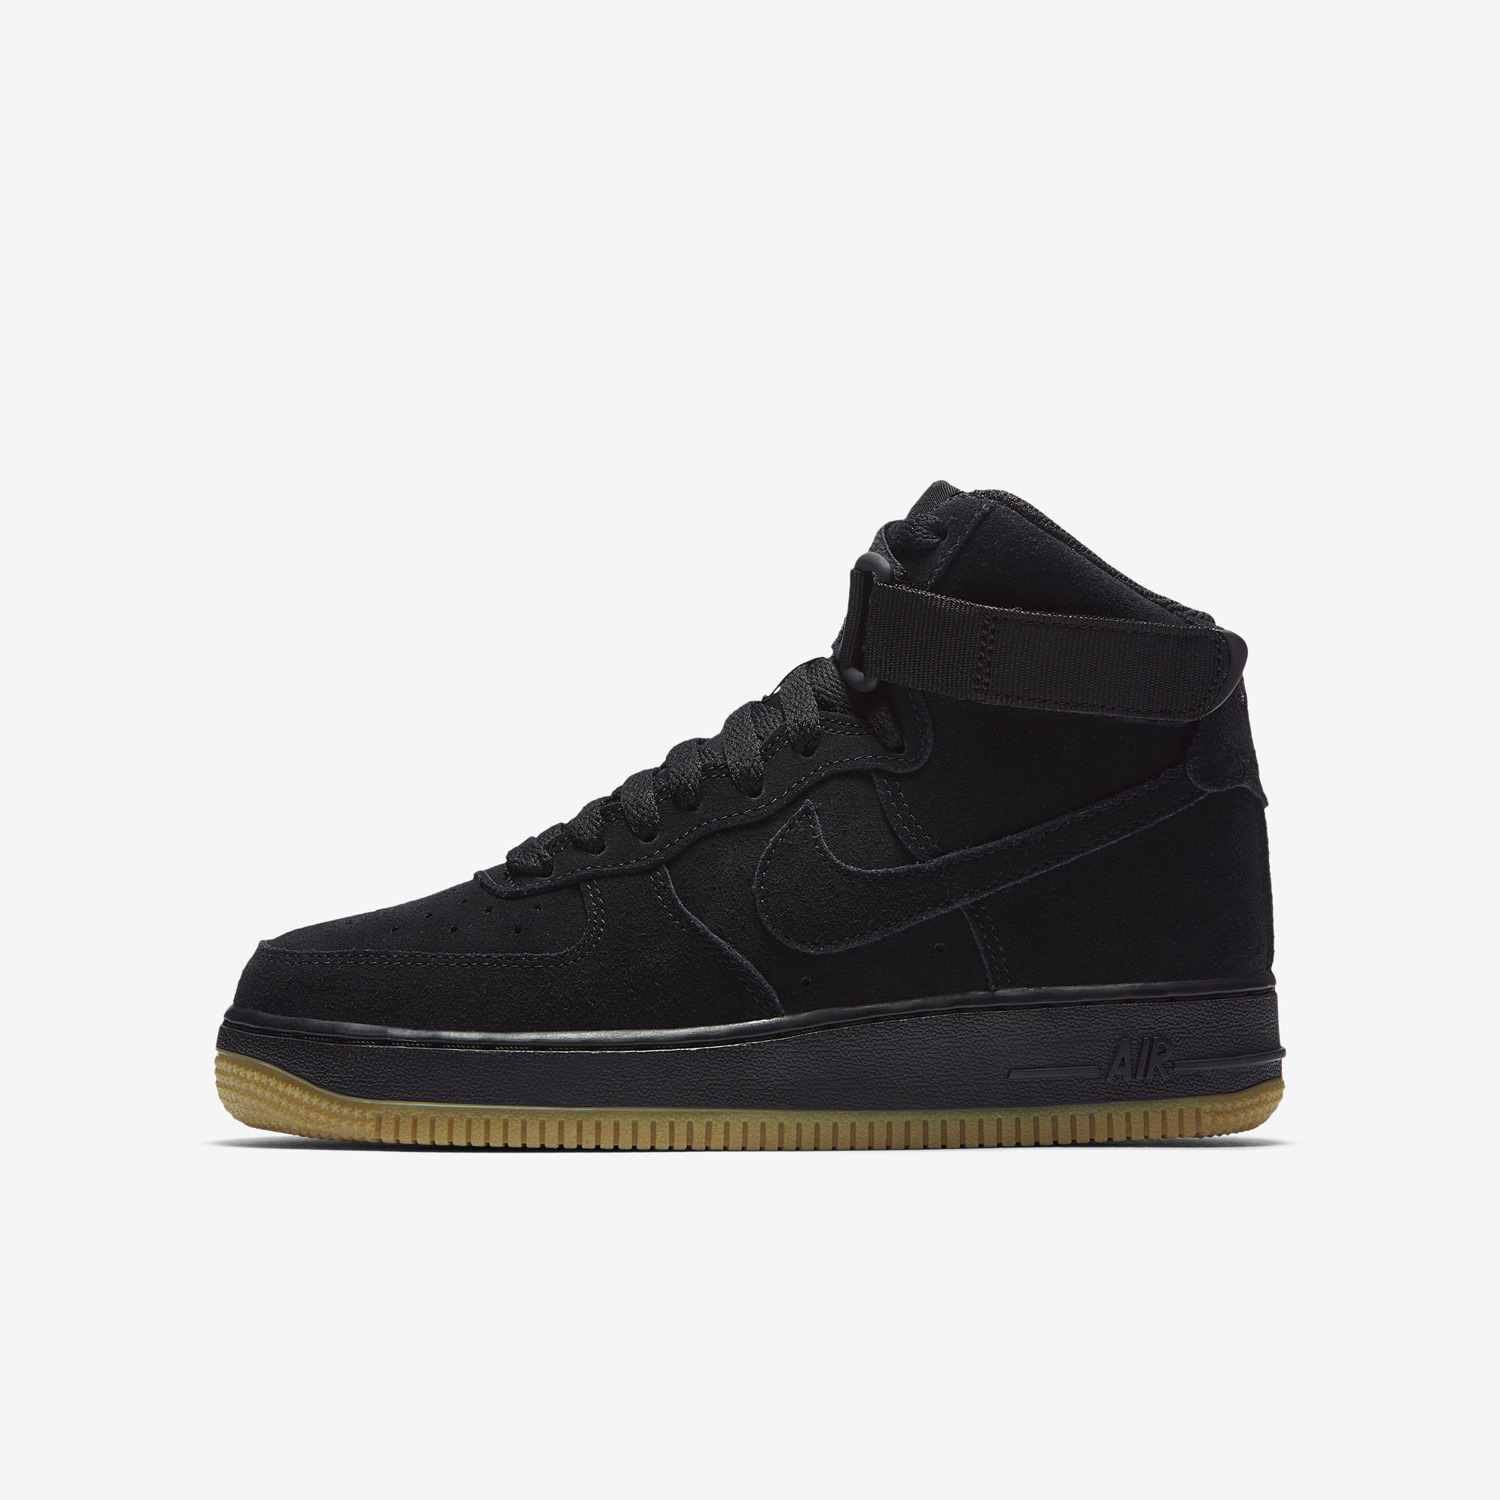 finest selection c7a5e 85bd4 ... Buty juniorskie Nike Air Force 1 High LV8 Black Gum 807617 002 ...